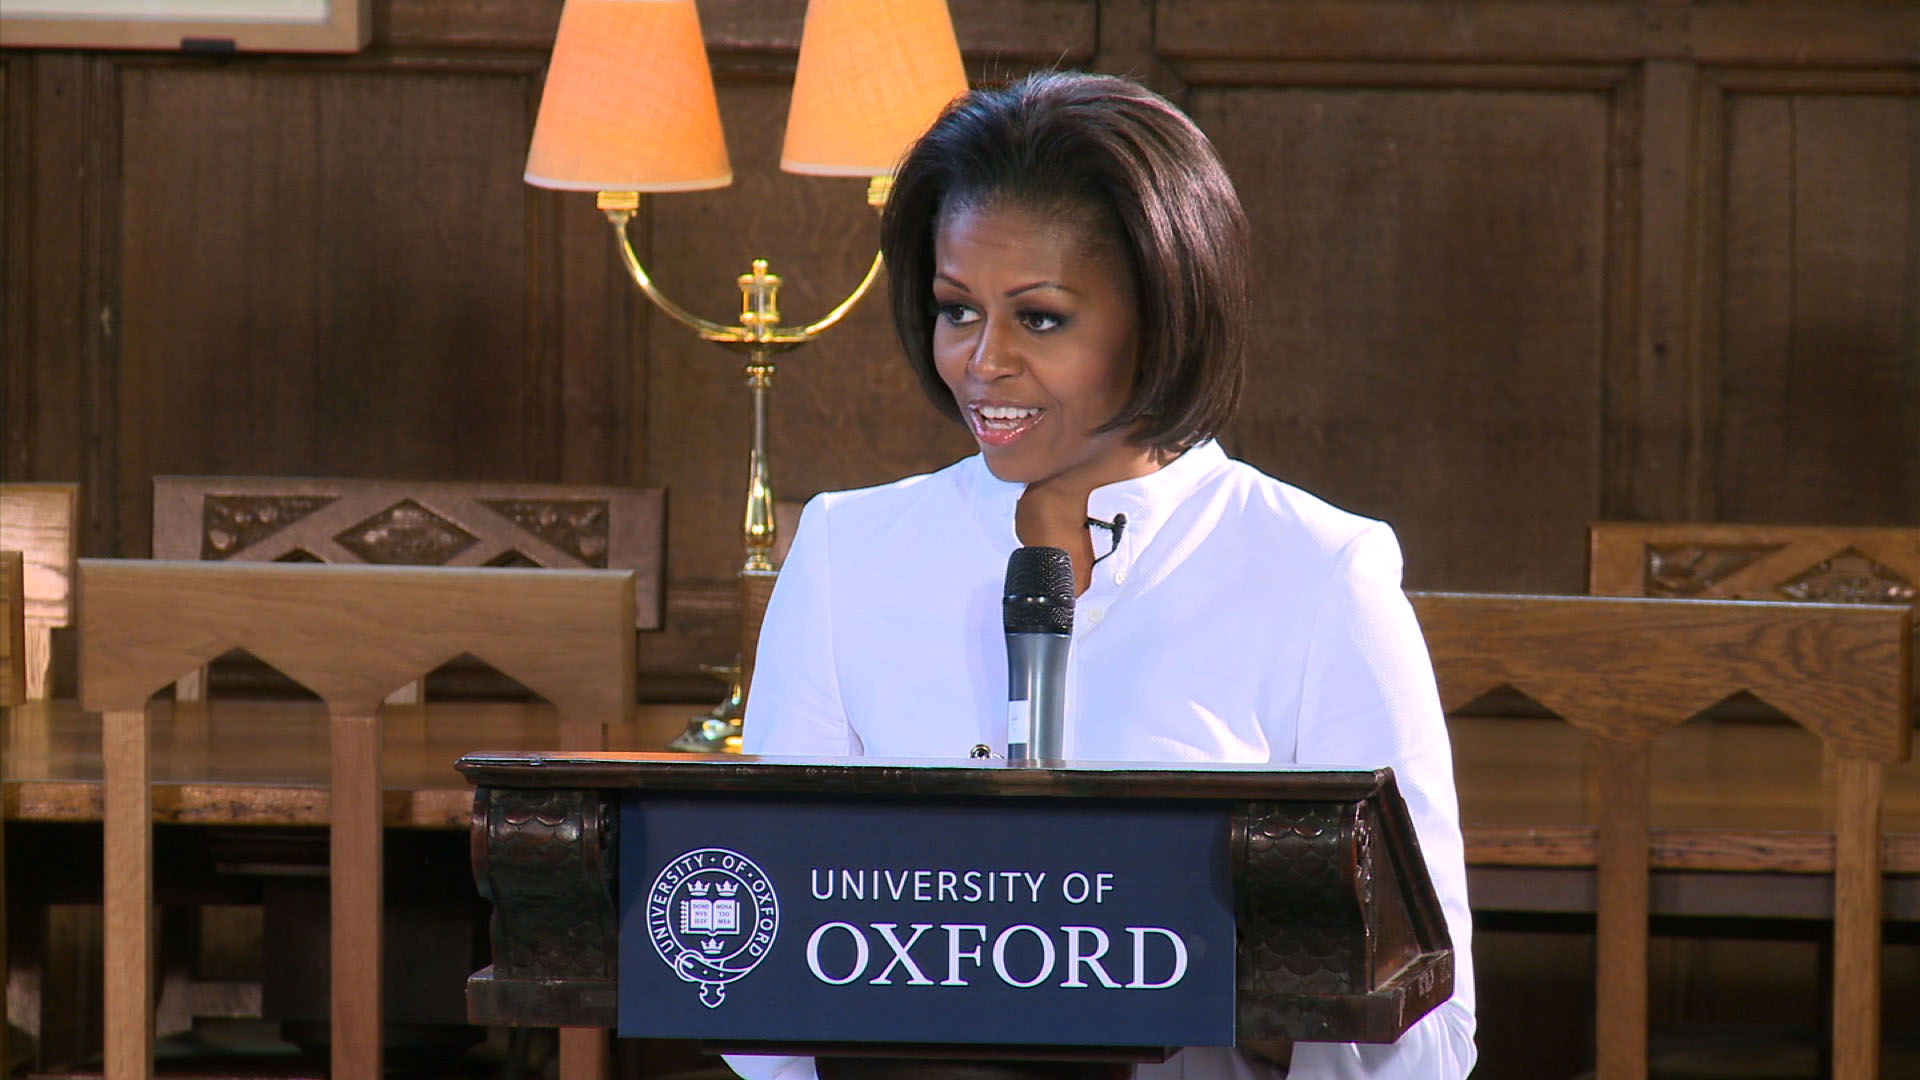 We captured Michelle Obama's wise words for local school children on a visit as First Lady.